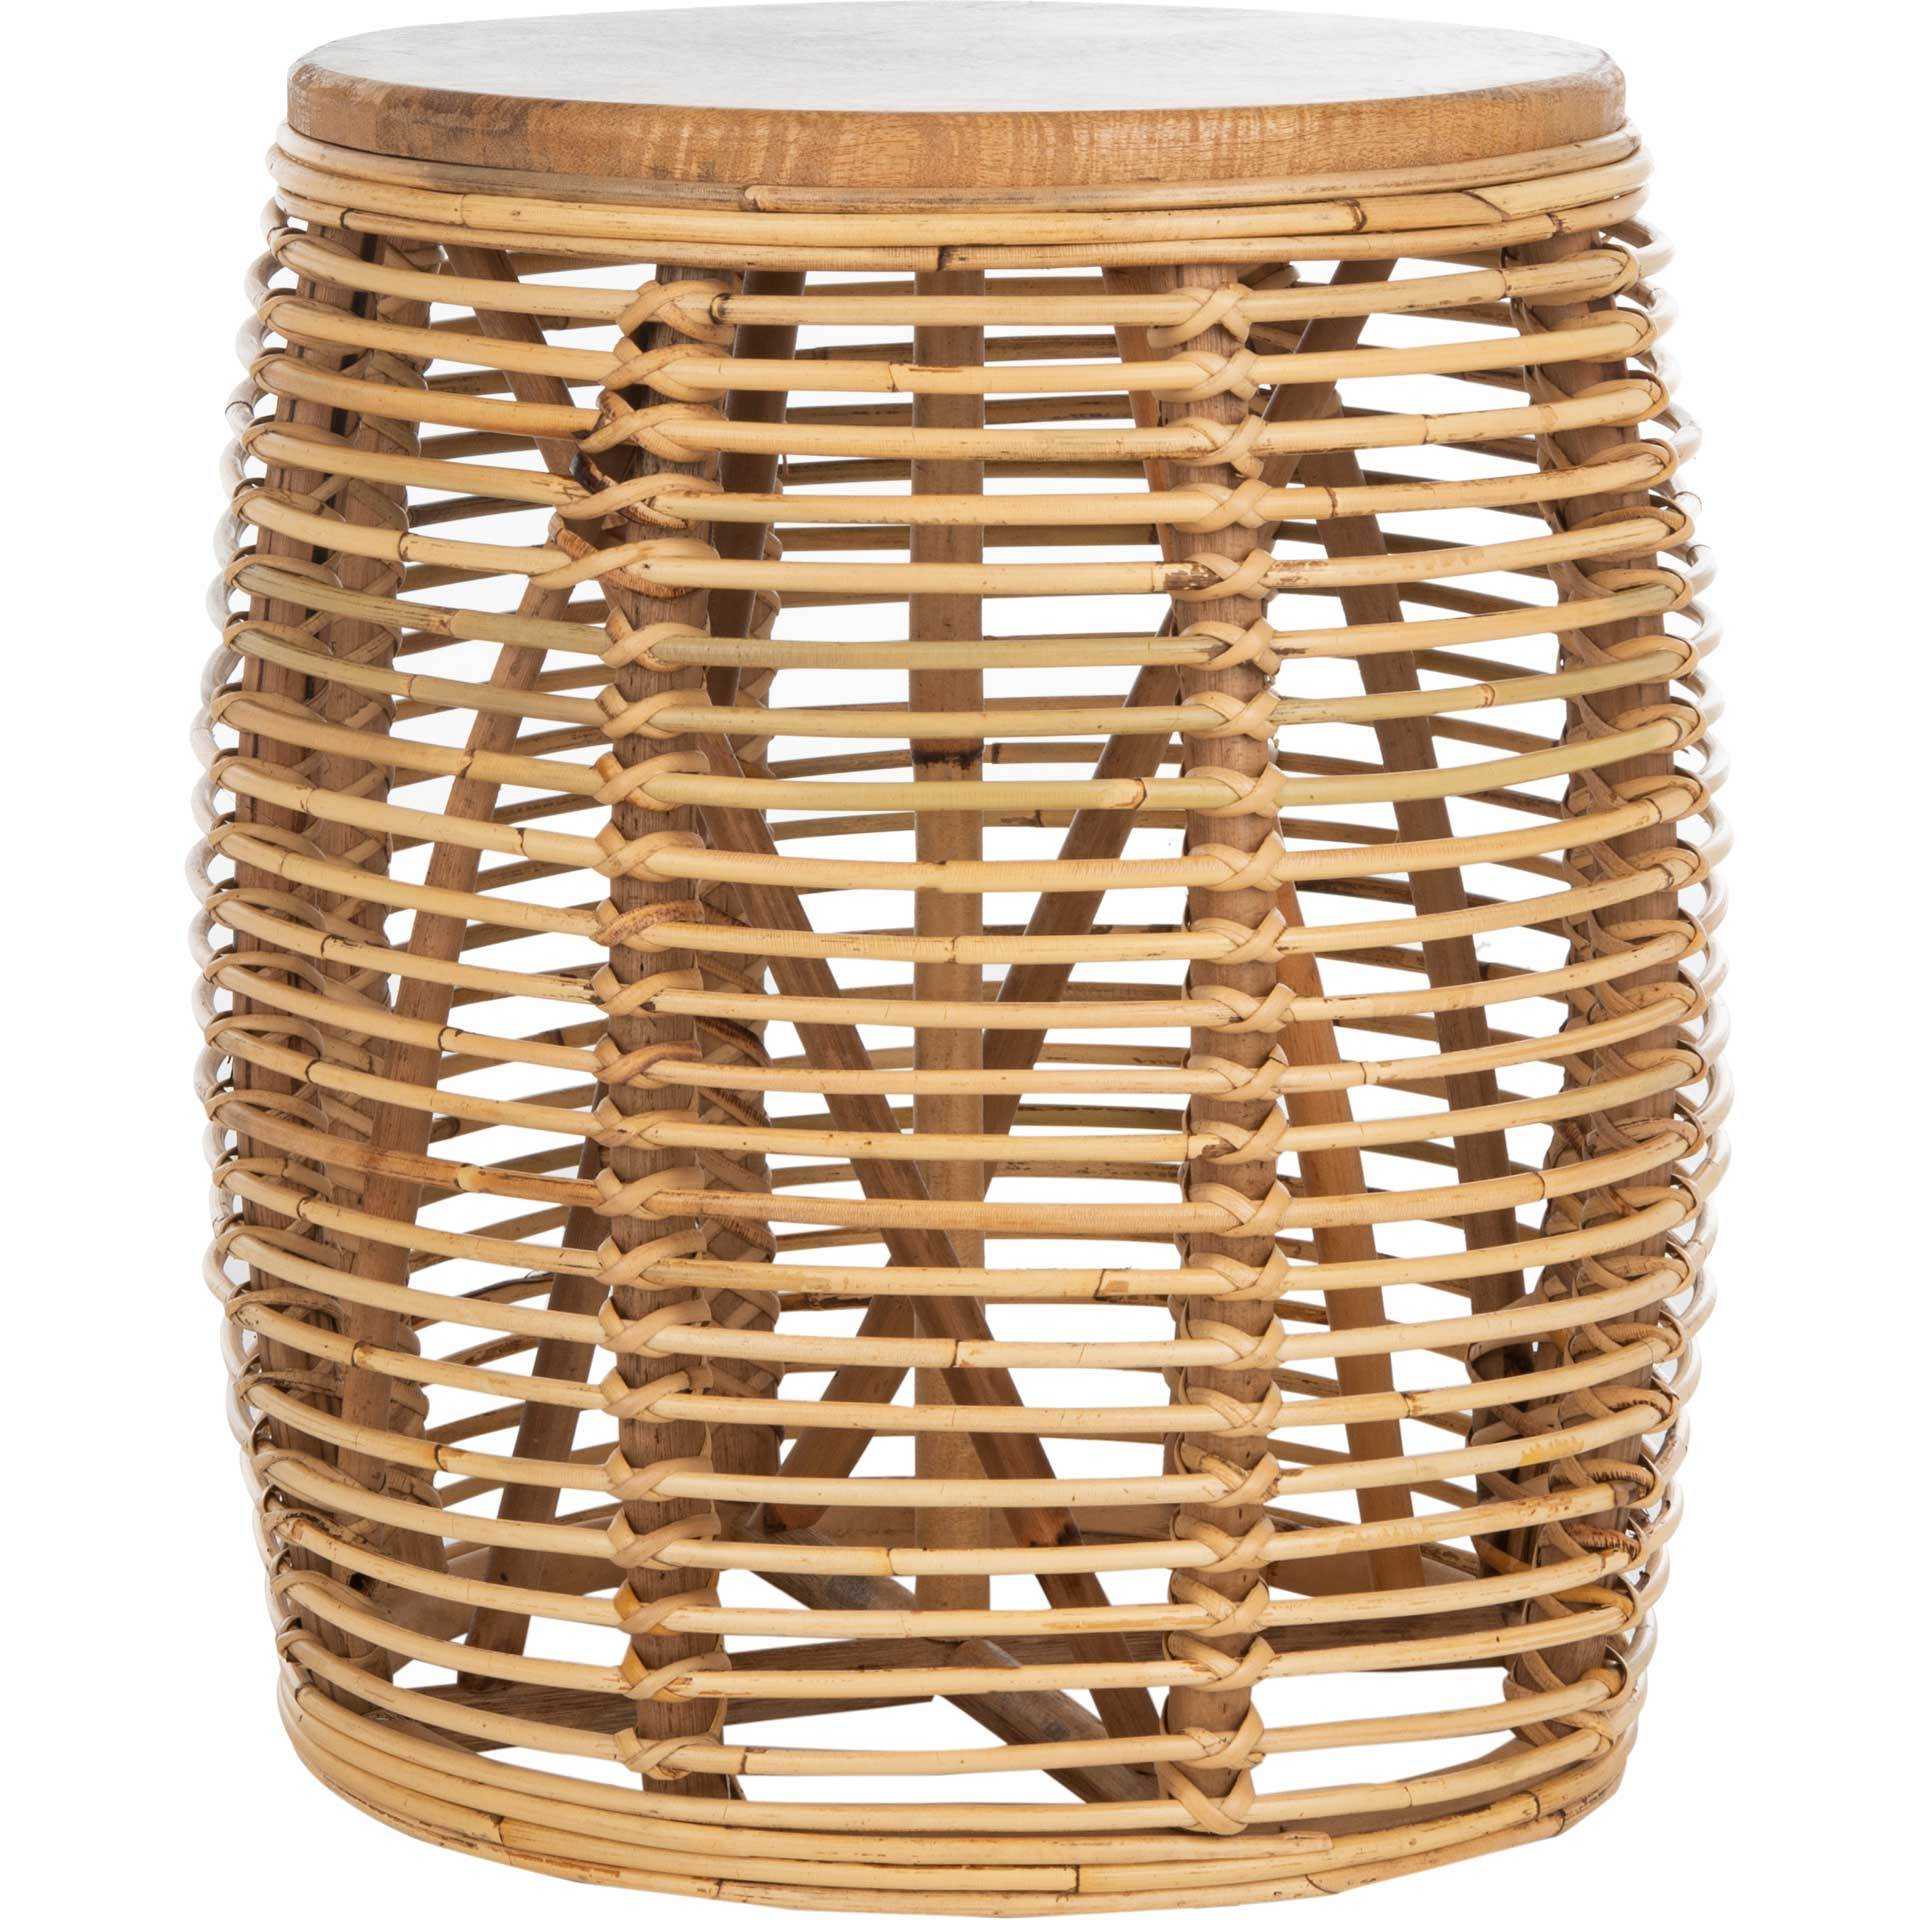 Malakai Rattan Drum Stool Table Natural